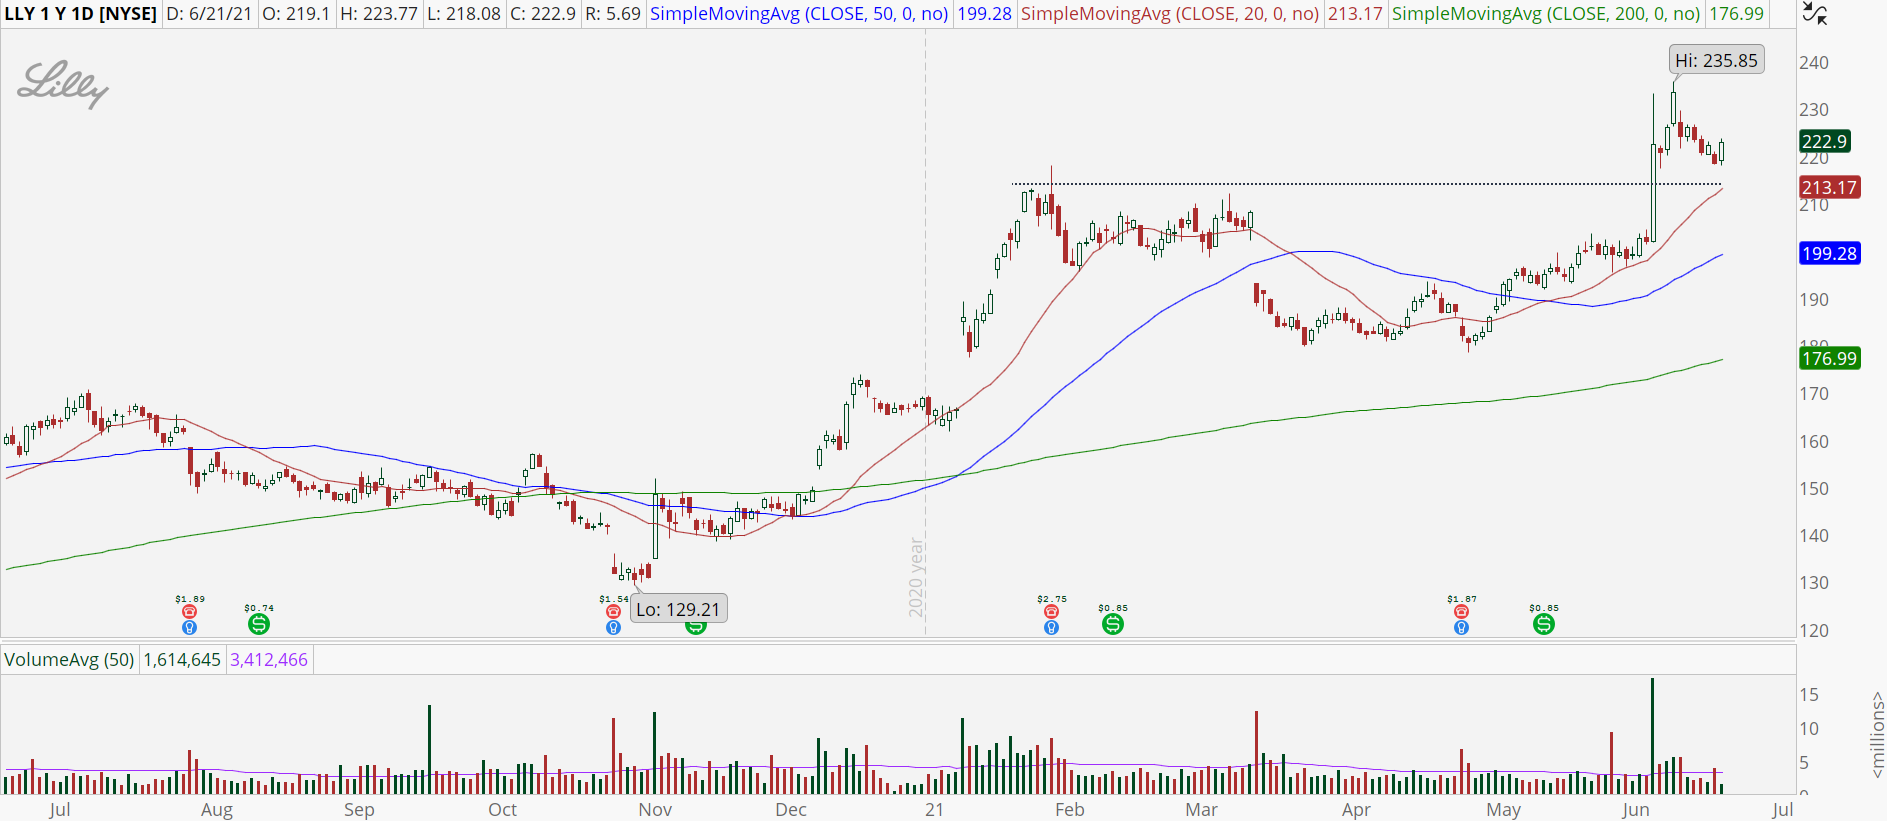 Eli Lilly (LLY) stock chart with bull retracement